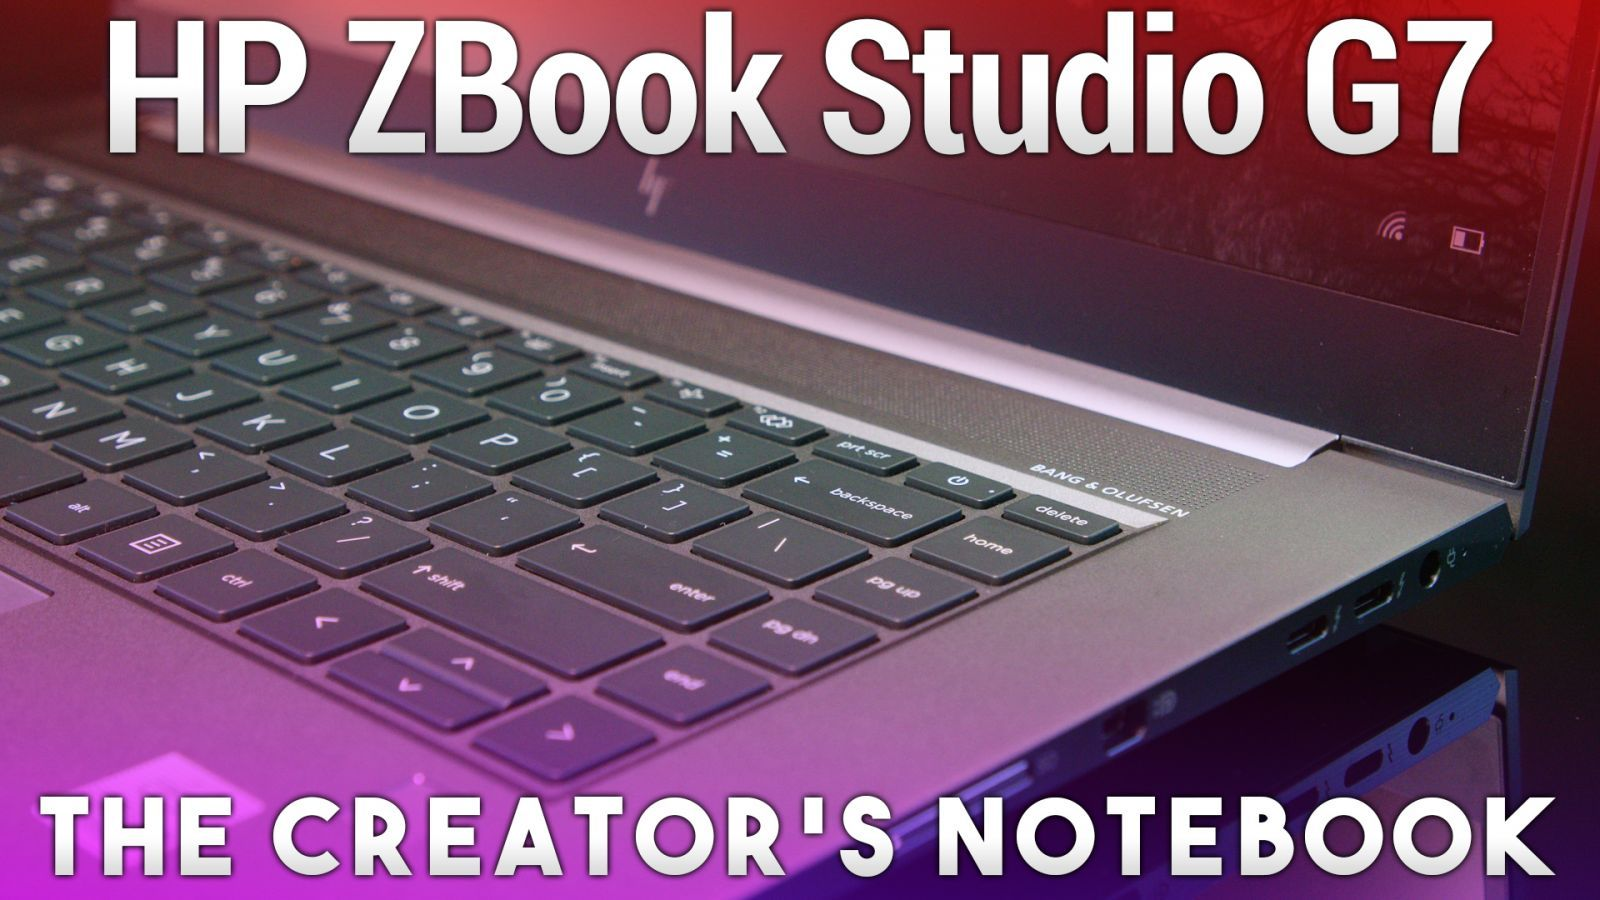 HP ZBook Studio G7 - Mobile Workstation for Creators